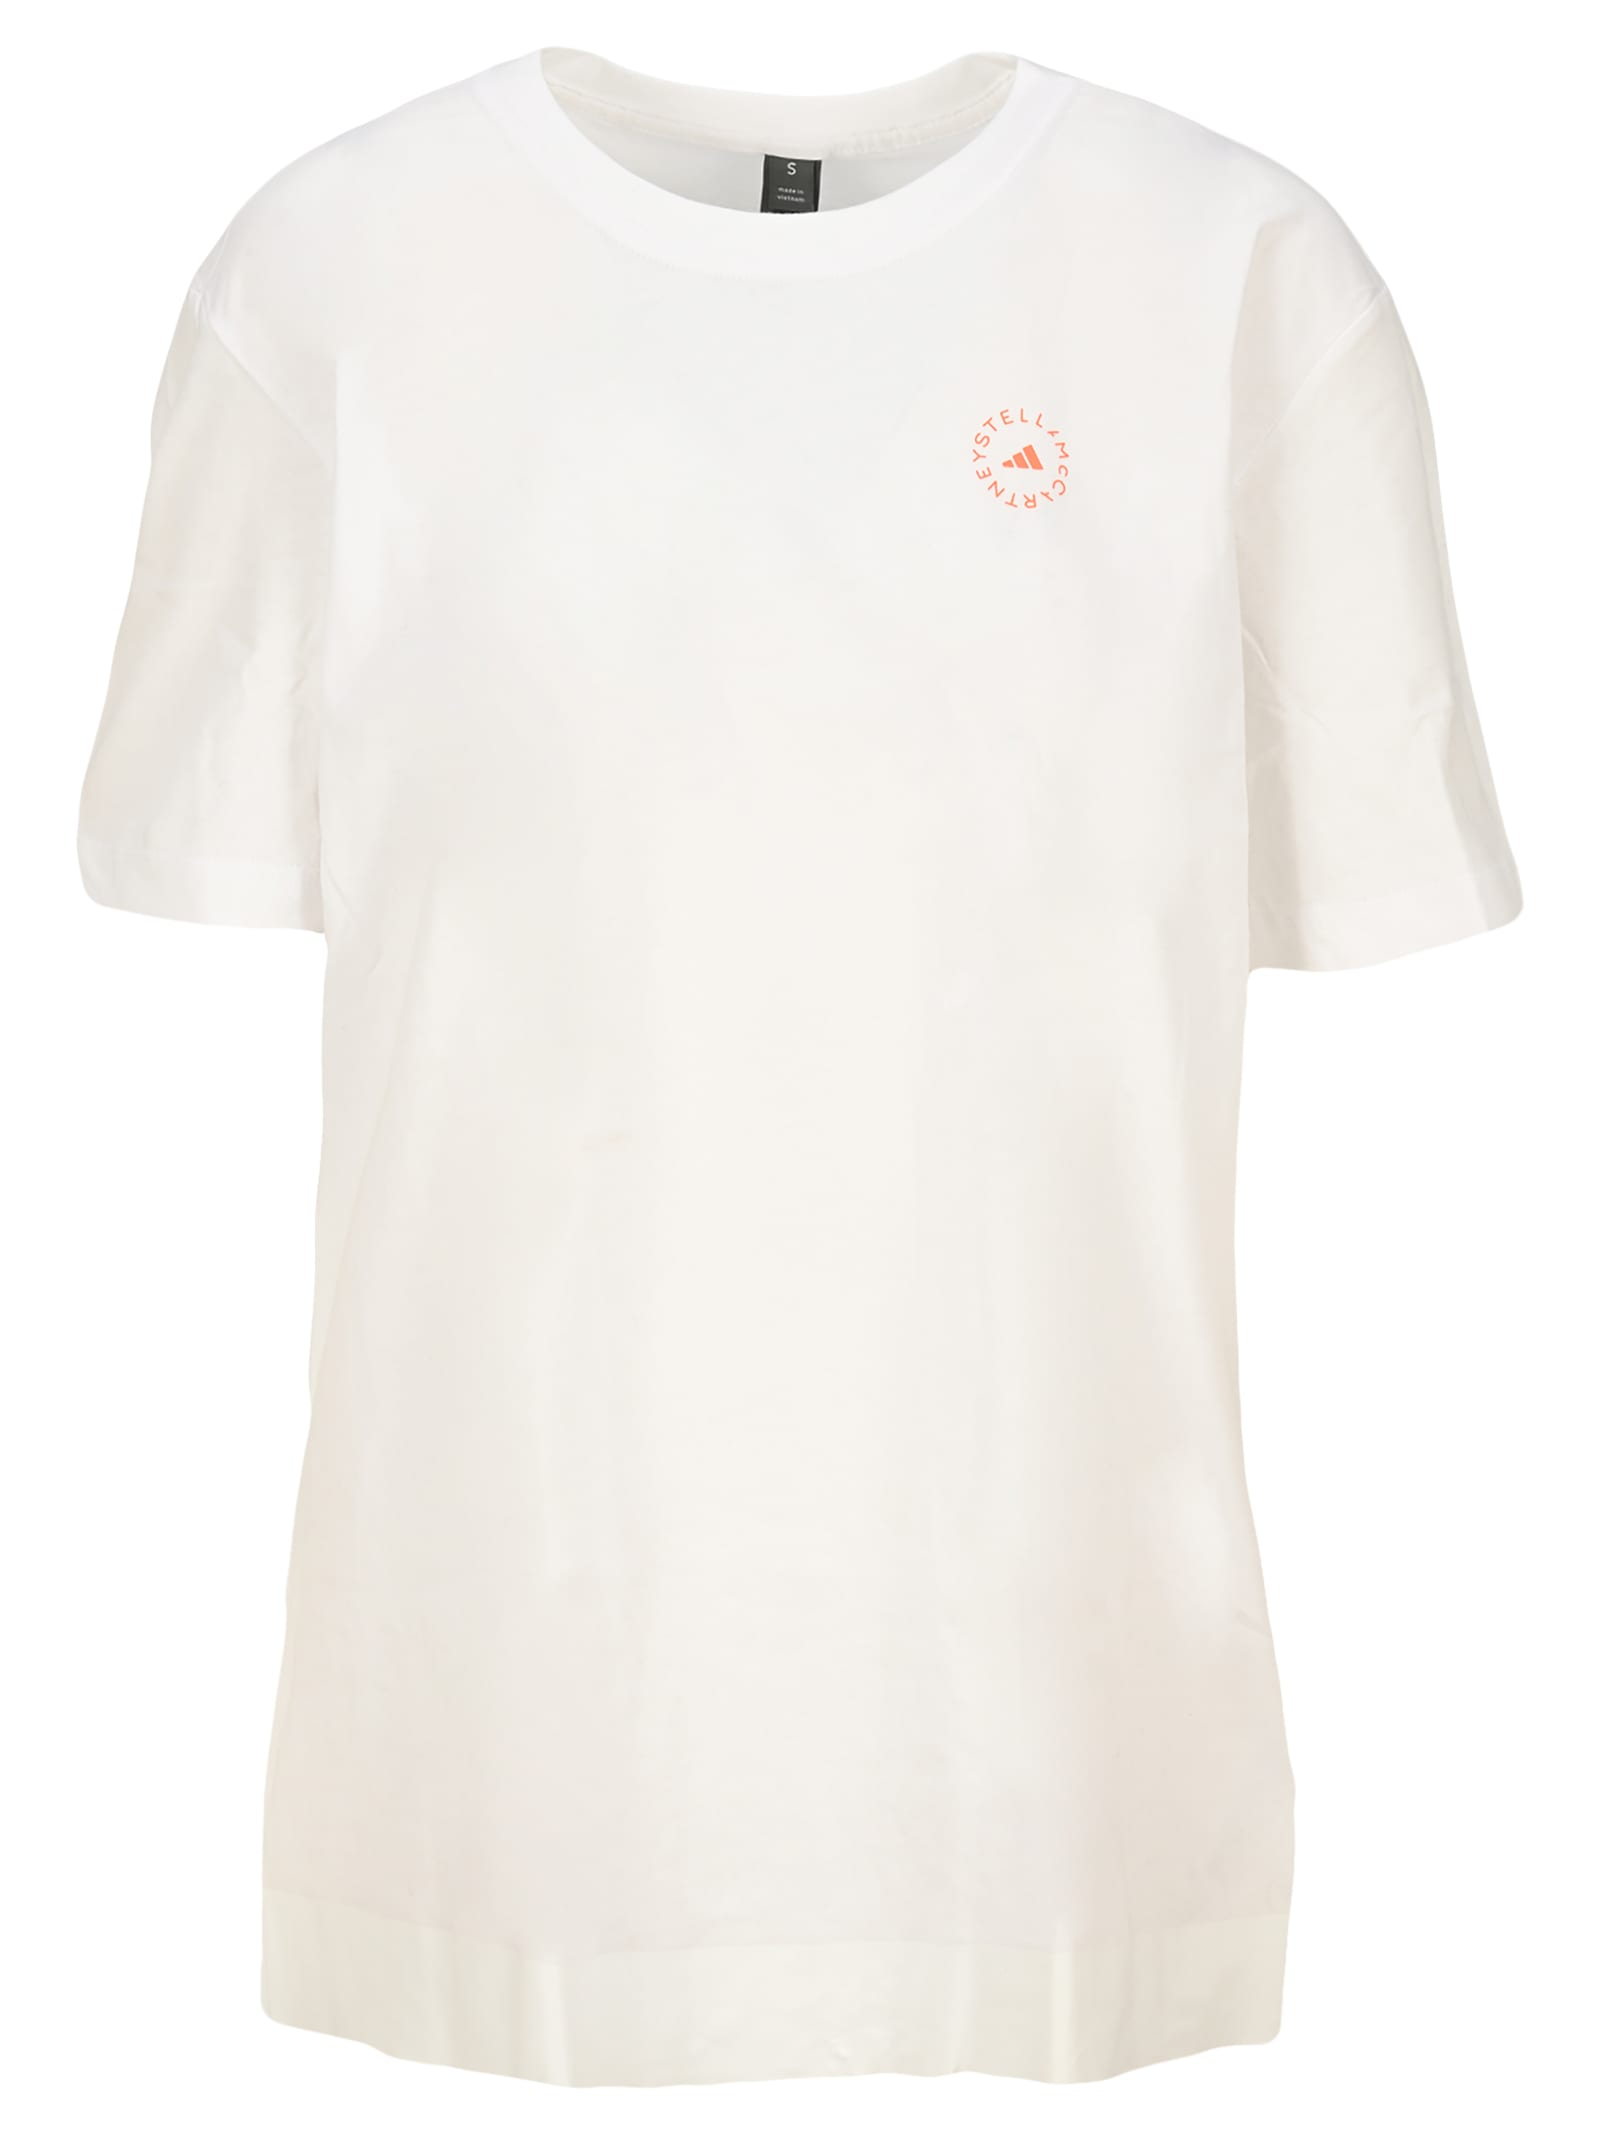 Adidas By Stella Mccartney Logo T-shirt